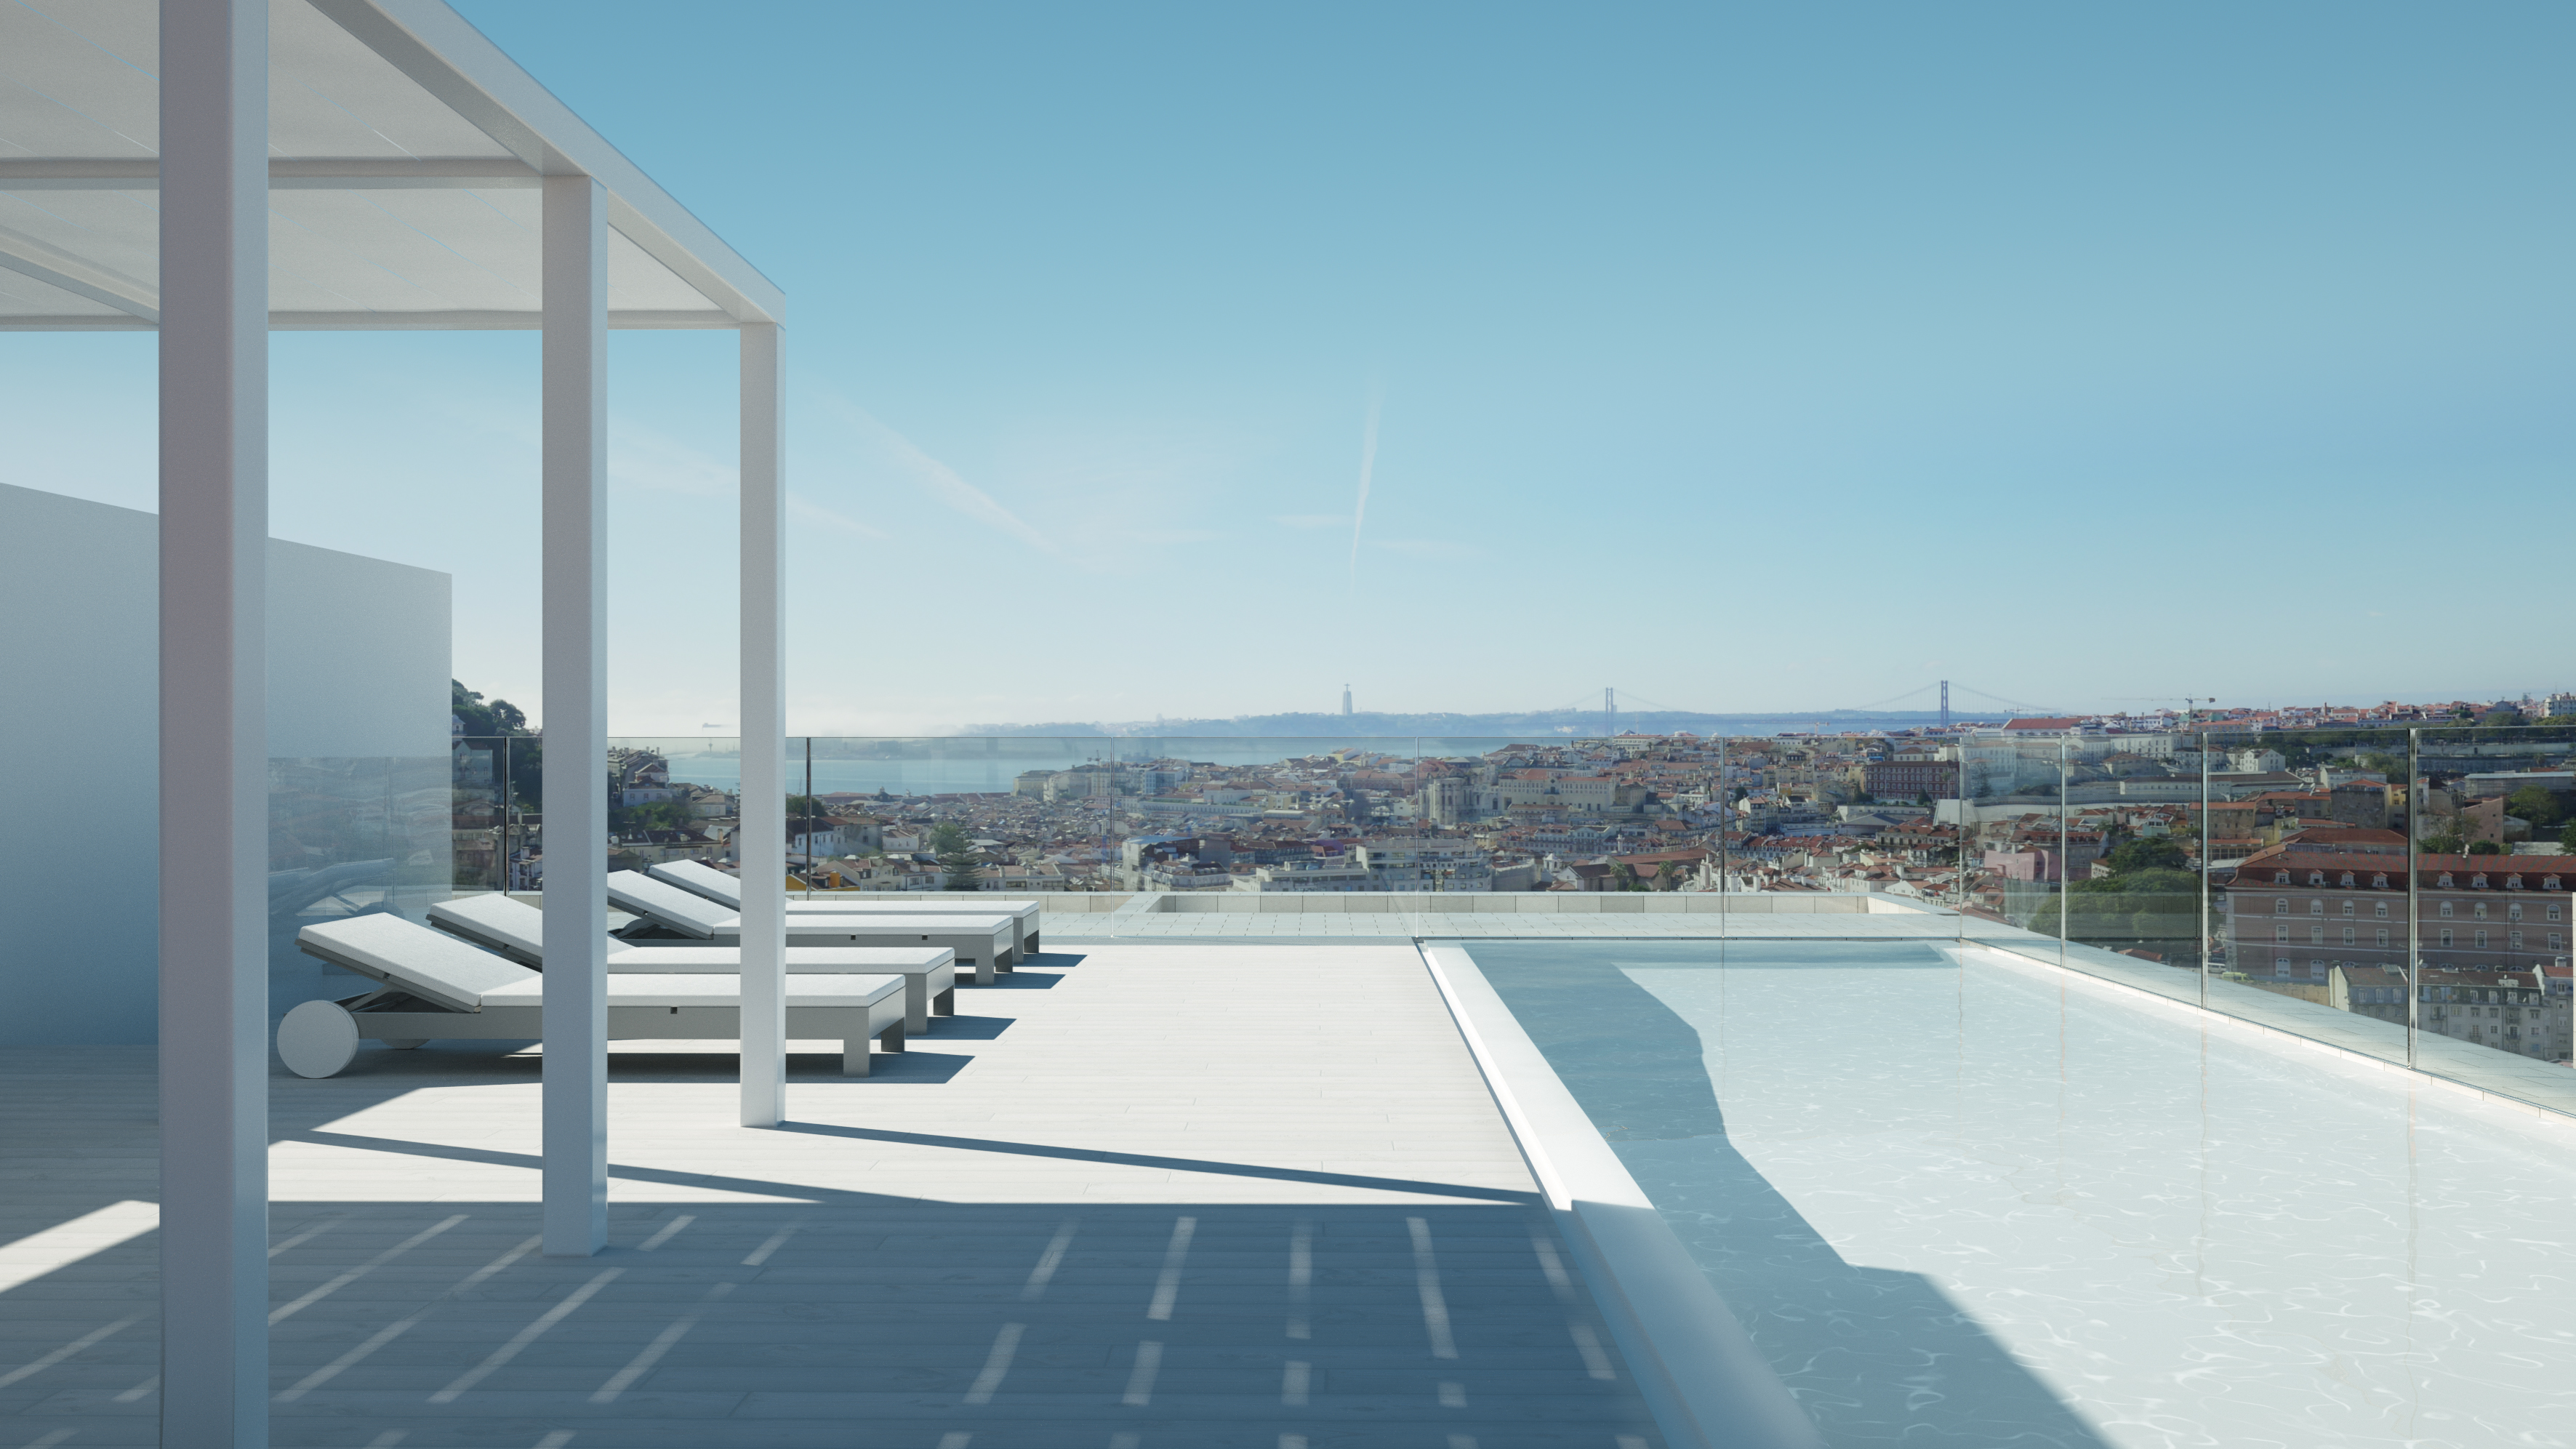 Apartments in Lisbon with breathtaking view and pool on the rooftop, Vanguardeagle Real Estate Ltd